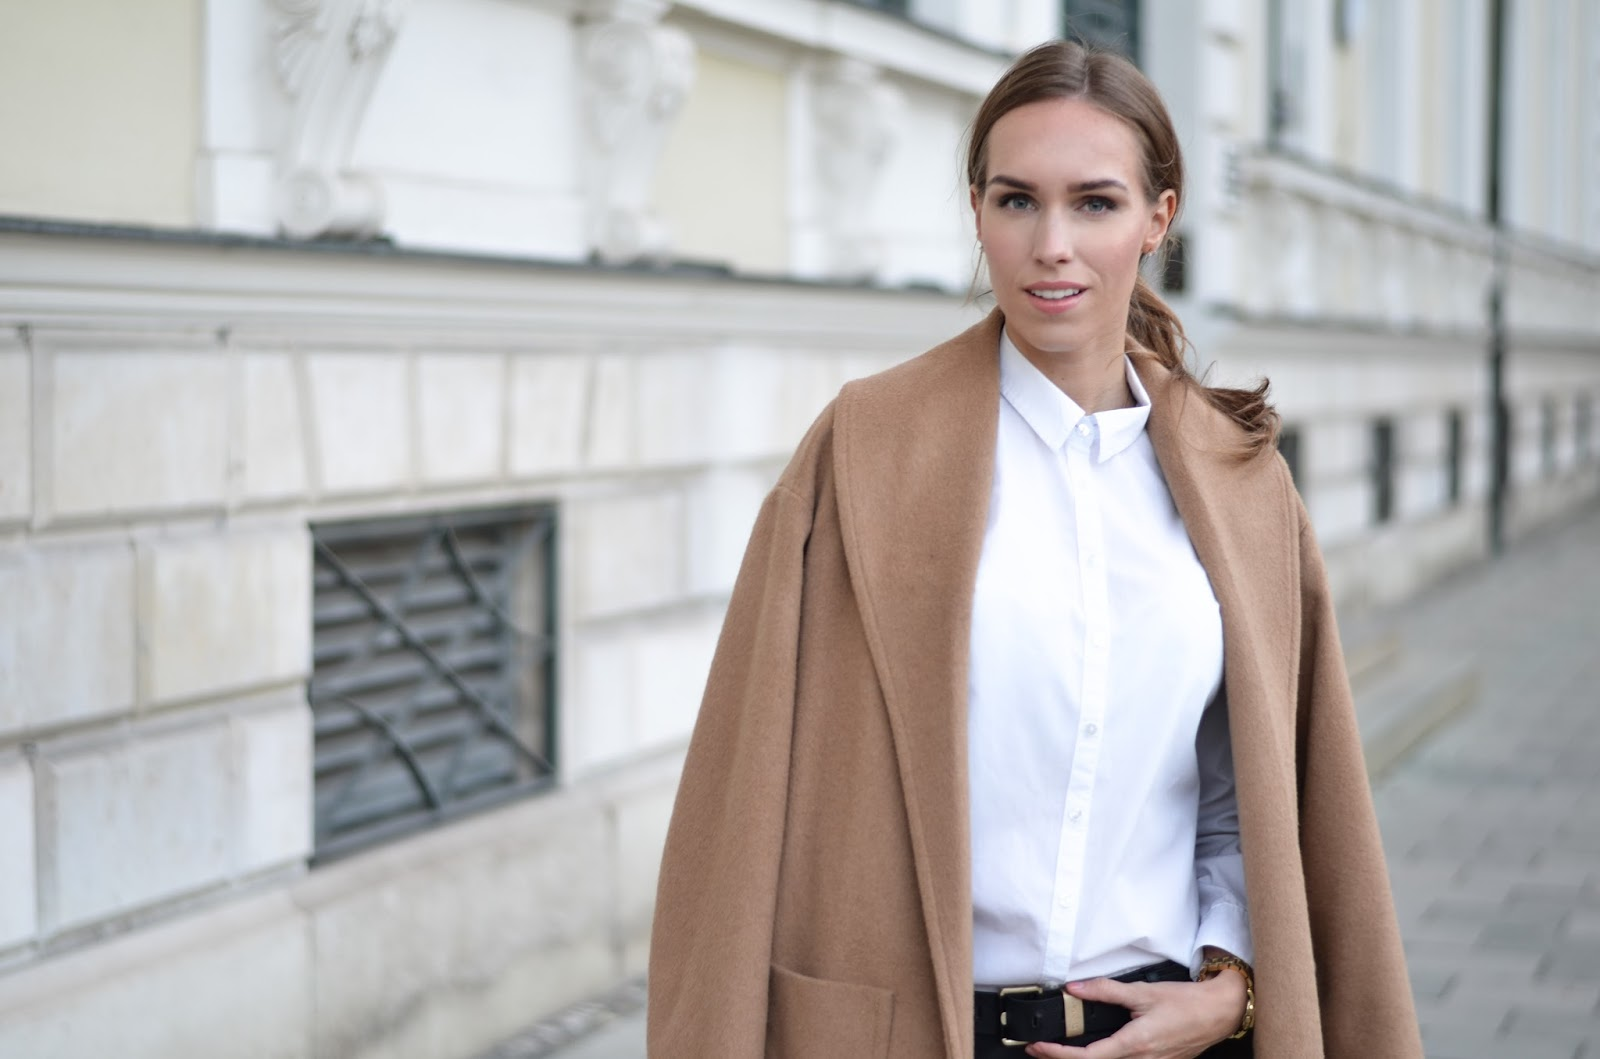 kristjaana mere camel coat white button down shirt minimalist fall winter outfit